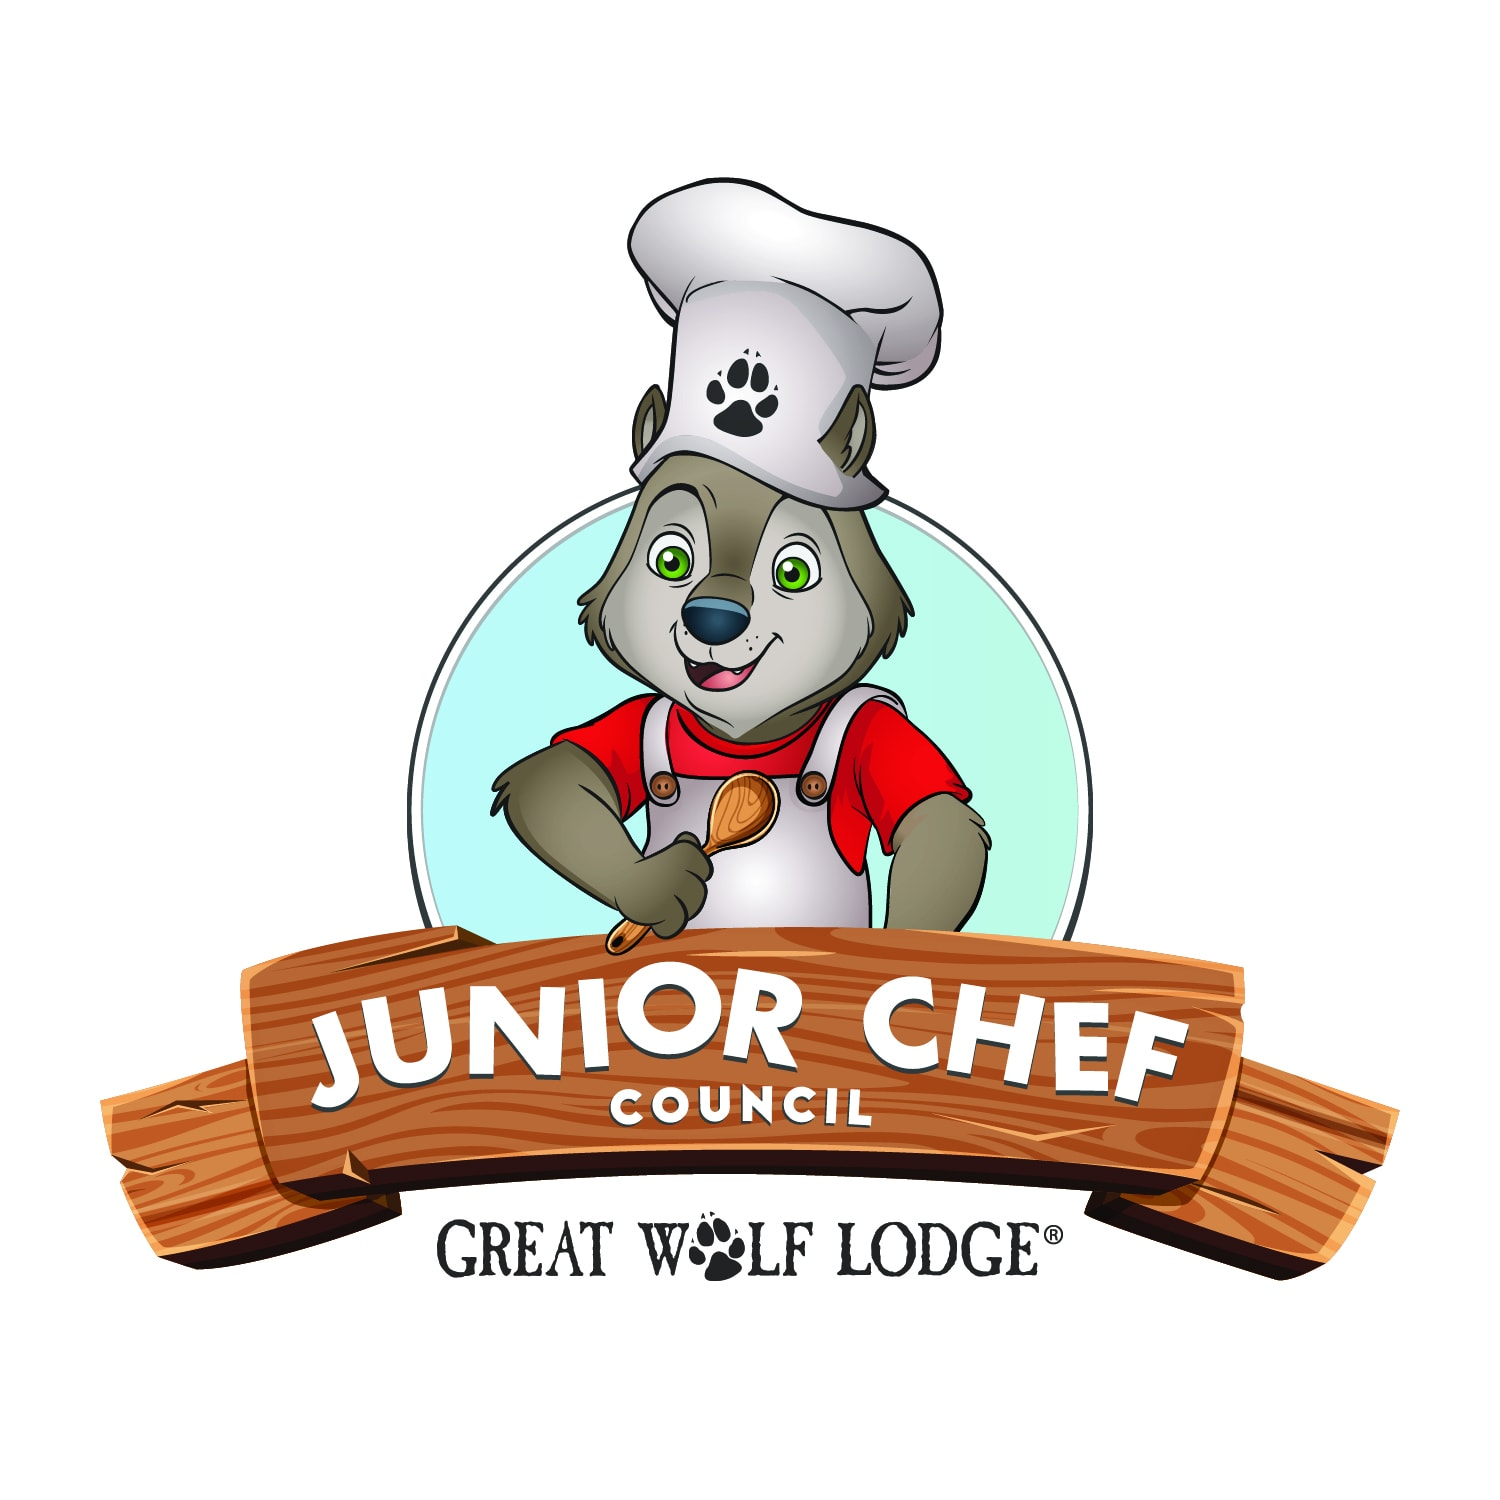 Great Wold Lodge Junior Chef